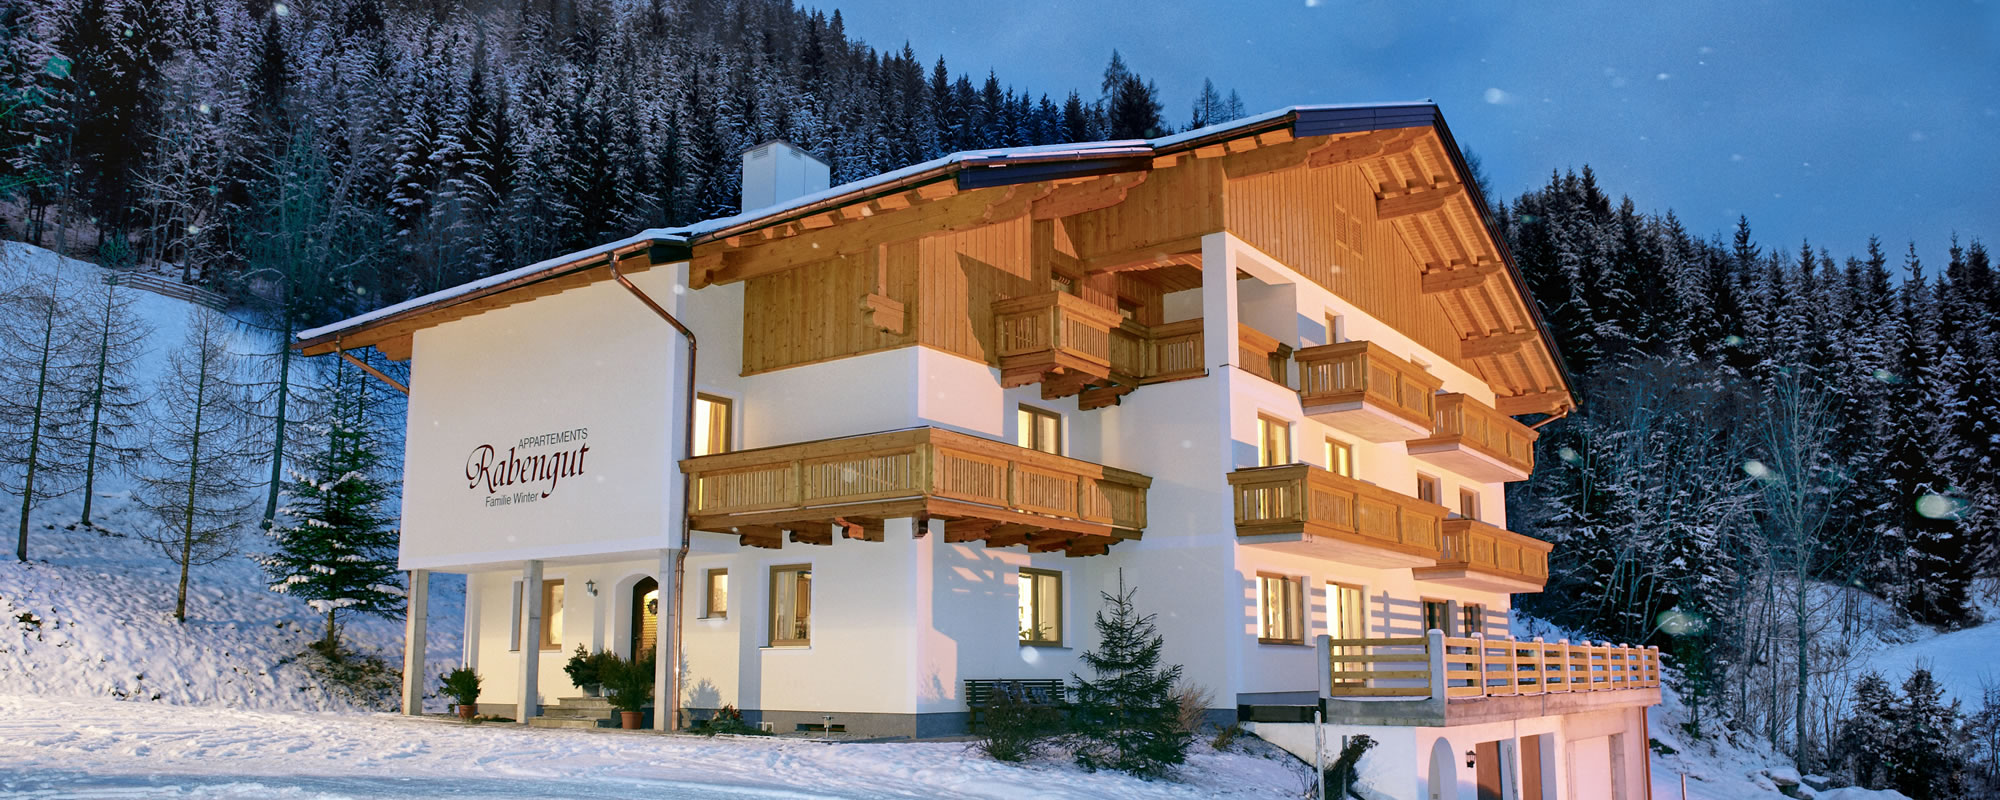 Winterurlaub in den Appartements Rabengut in Flachauwinkl, Ski amadé